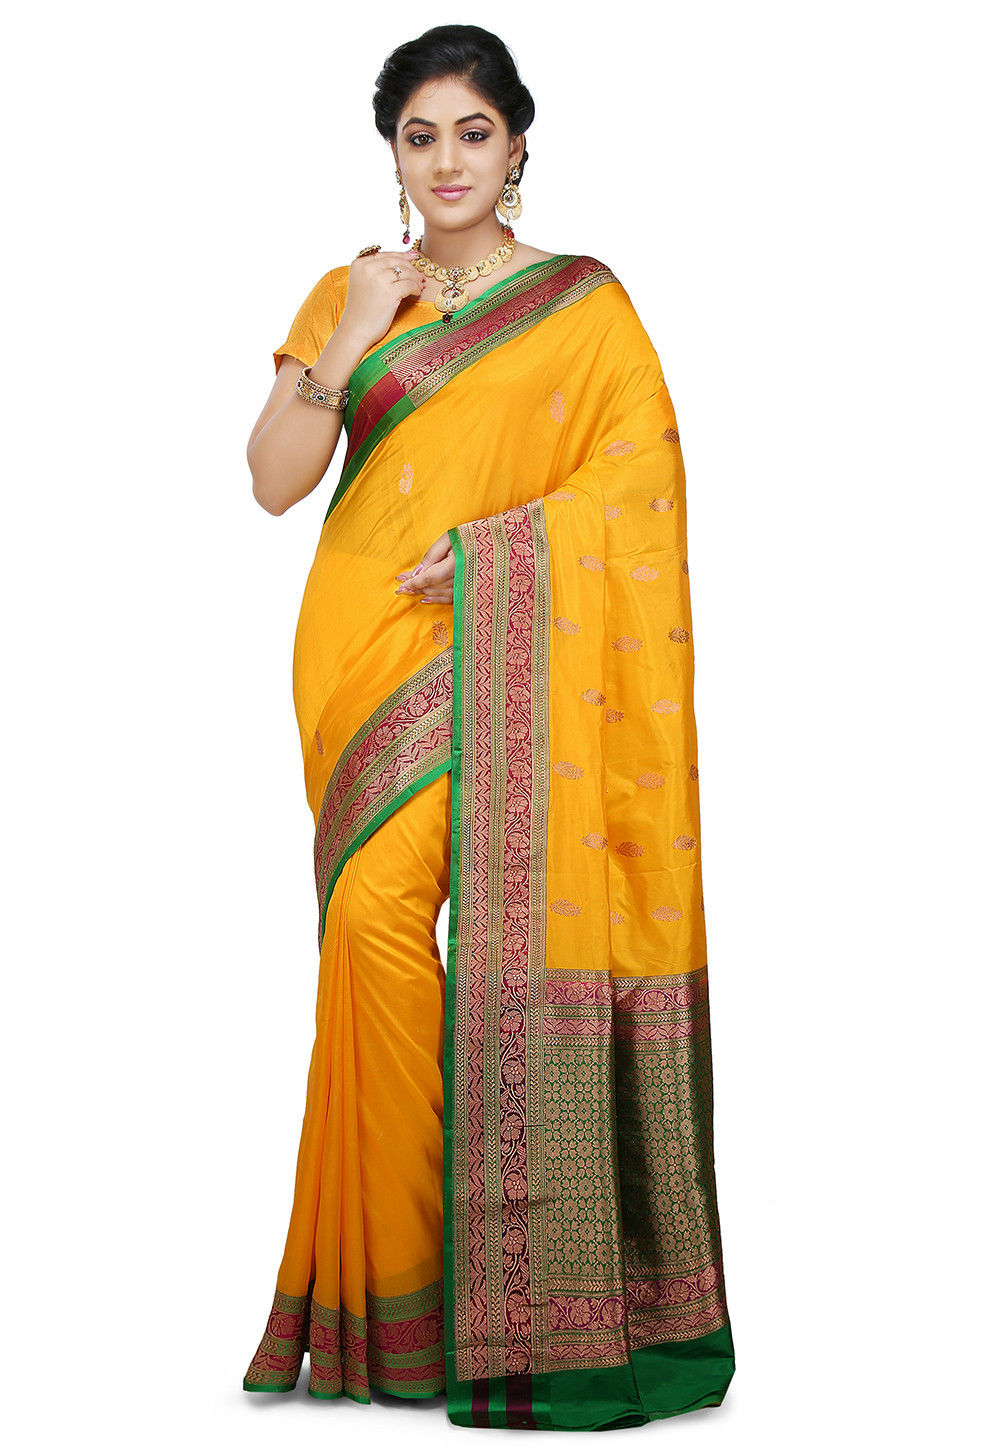 Banarasi Pure Katan Silk Handloom Saree in Yellow